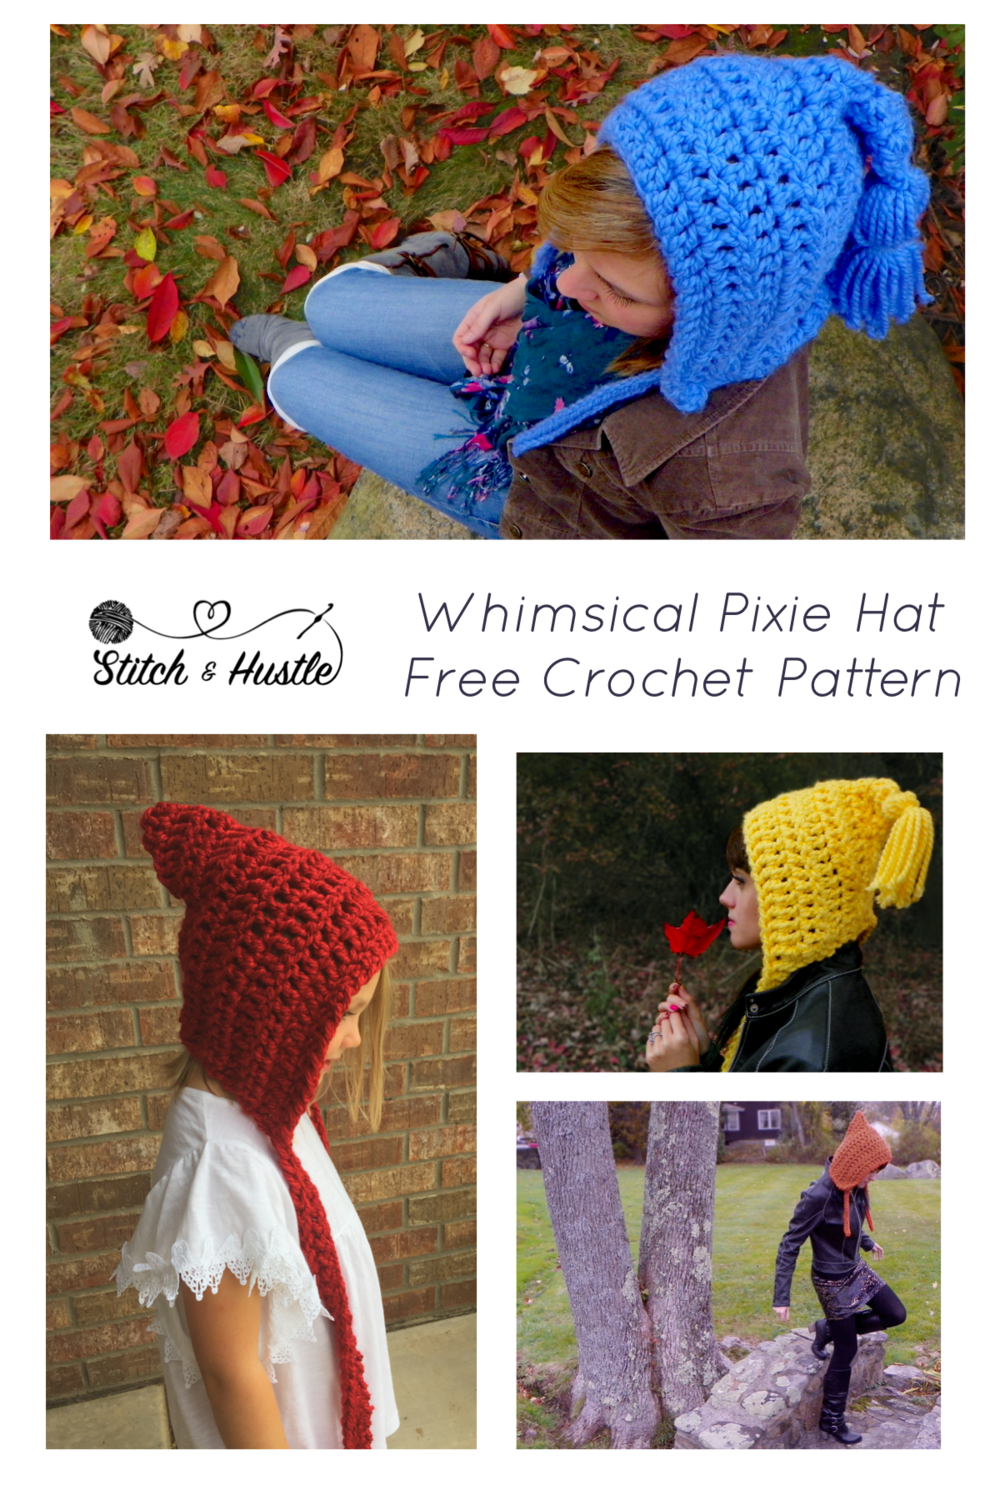 Get Your Whimsy On - Free Pixie Hat Crochet Pattern — Stitch & Hustle